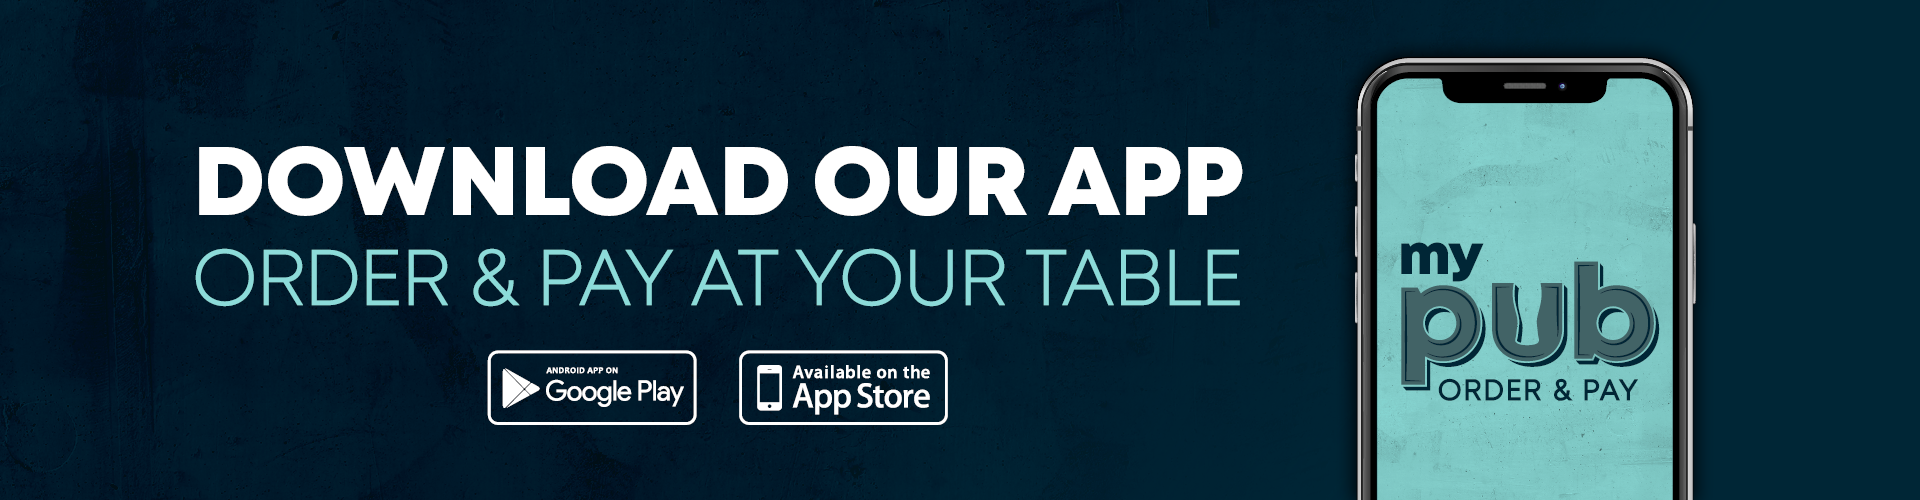 Download Our App - Order & Pay At Your Table